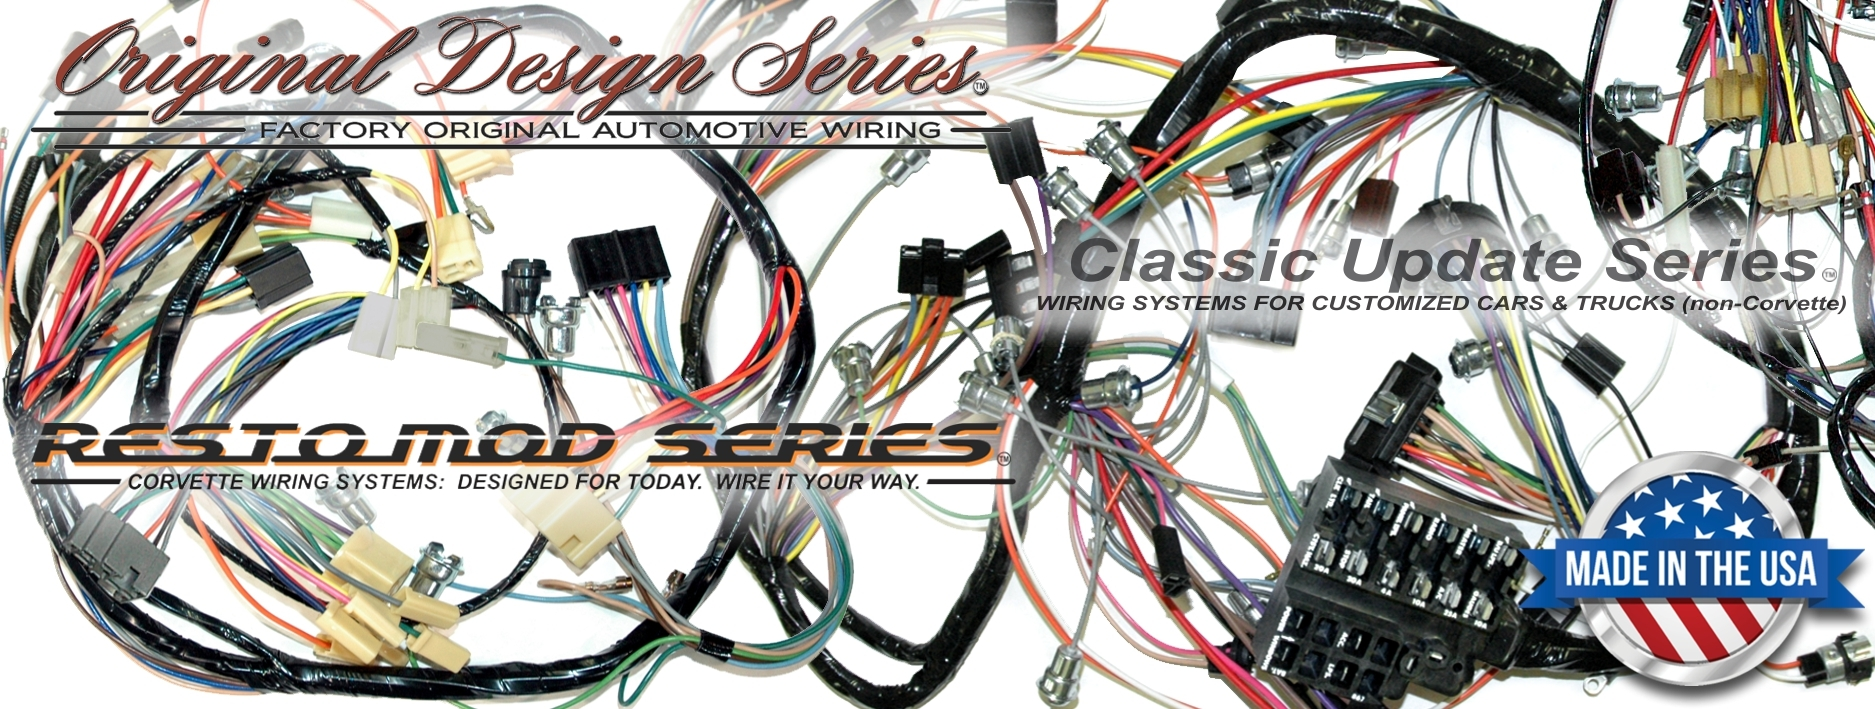 hight resolution of exact oem reproduction wiring harnesses and restomod wiring systems 1979 corvette with power windows wiring harness dash 1979 corvette wiring harness